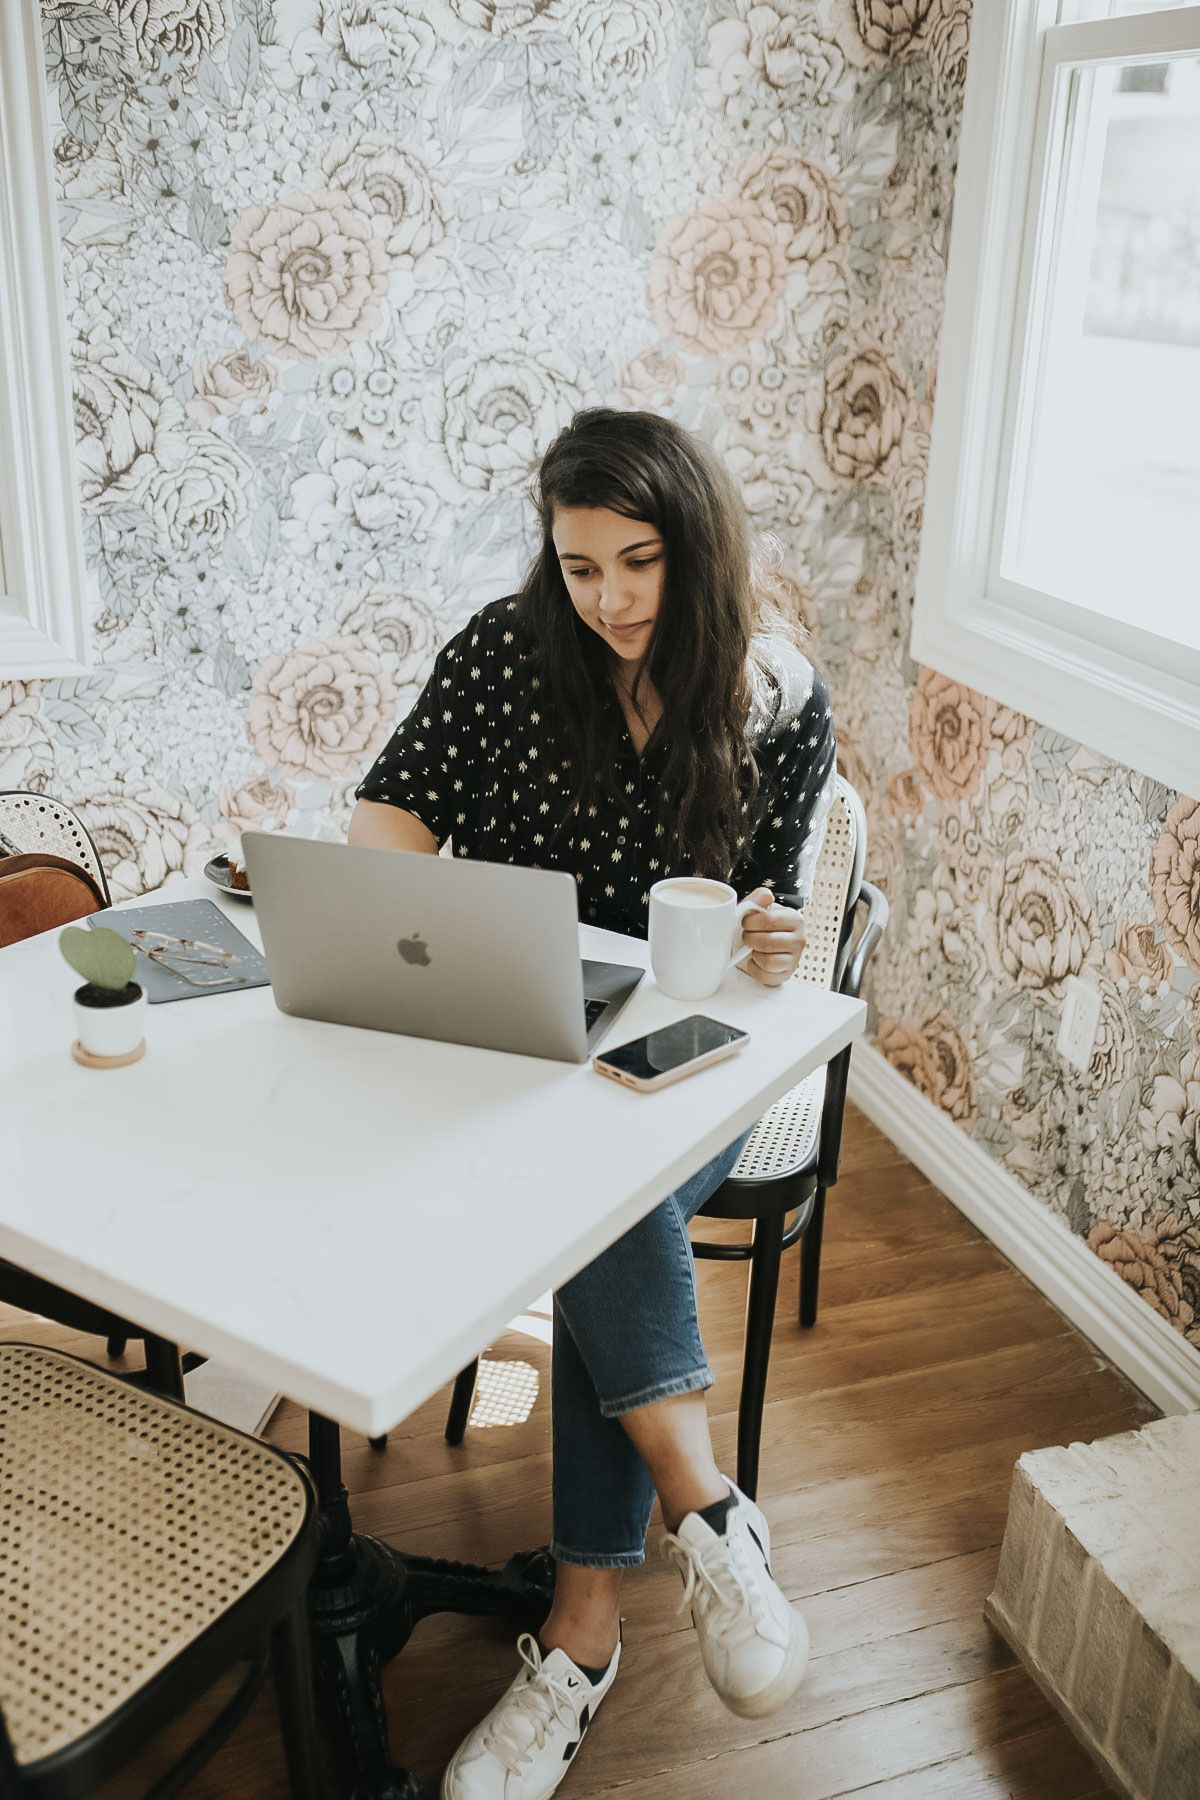 How to Progress in Your Career While Working From Home